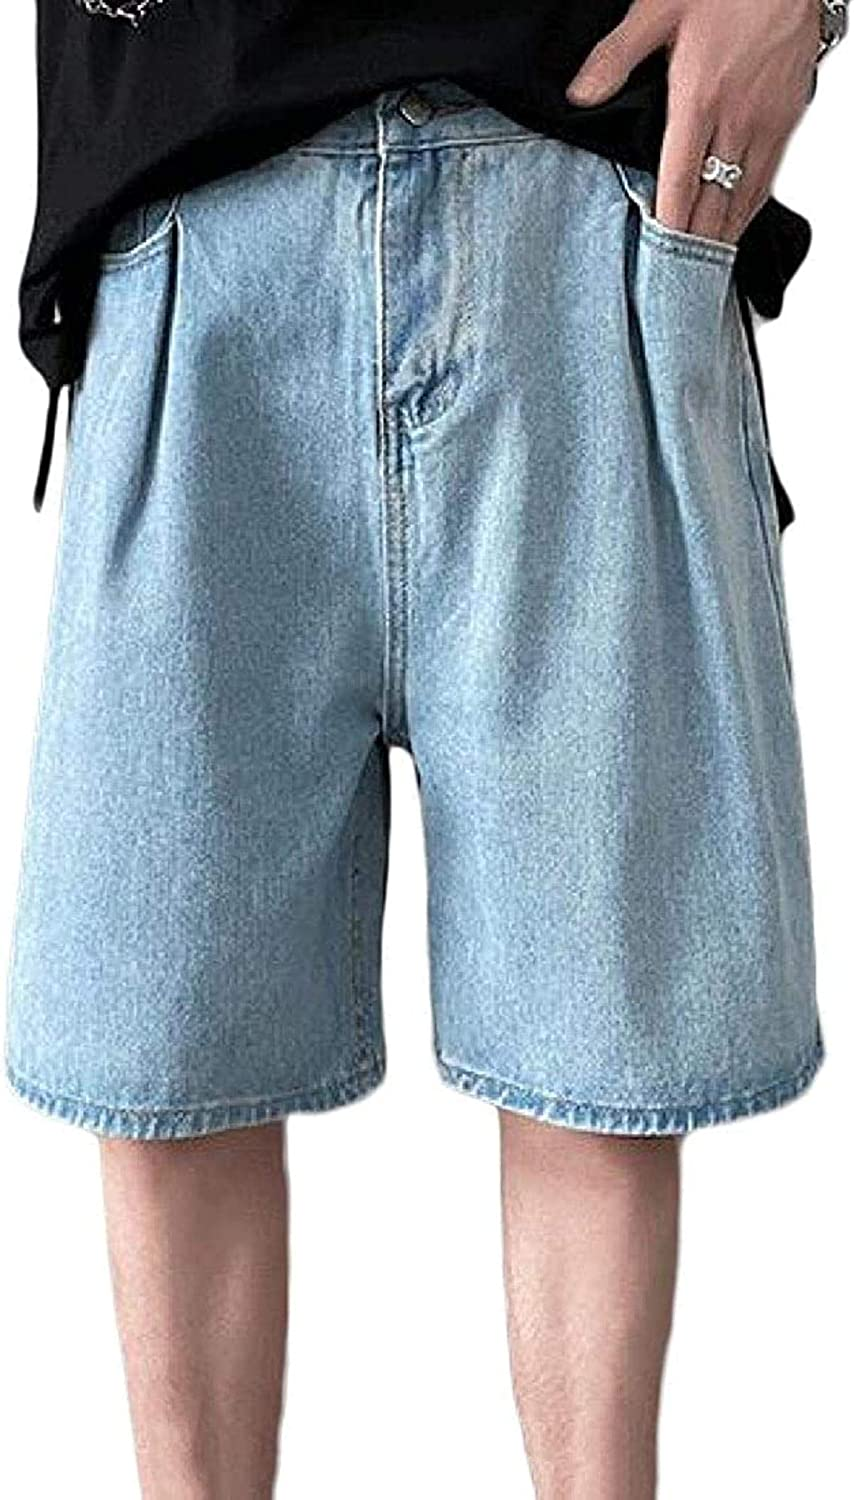 JNBGYAPS Mens Hip Hop Casual Summer Straight Leg Relaxed Fit Denim Shorts Jeans